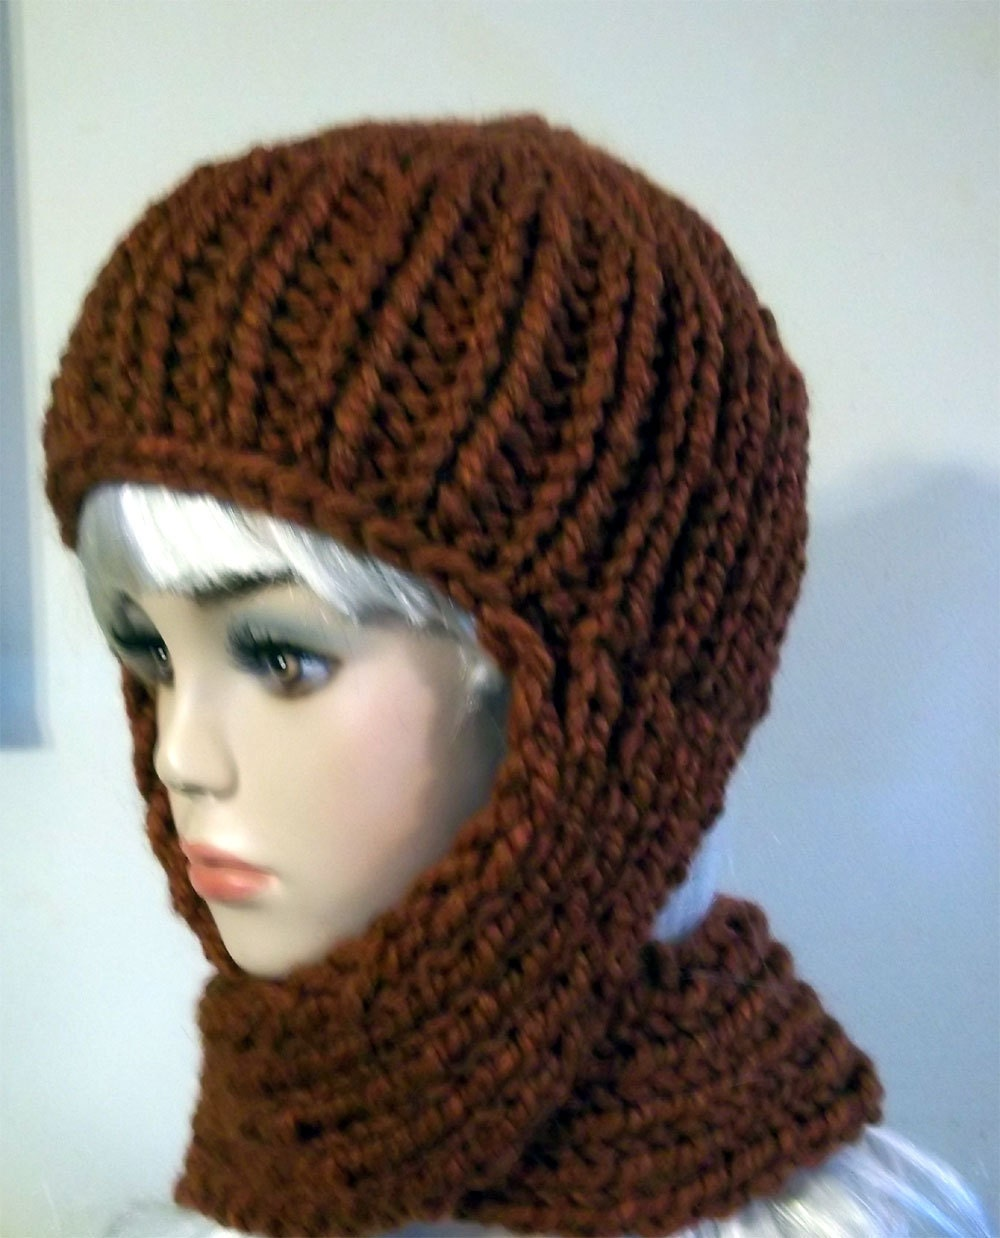 Knitting Pattern For Hat With Scarf Attached : Knit Scarf Hat for Women Rust Orange